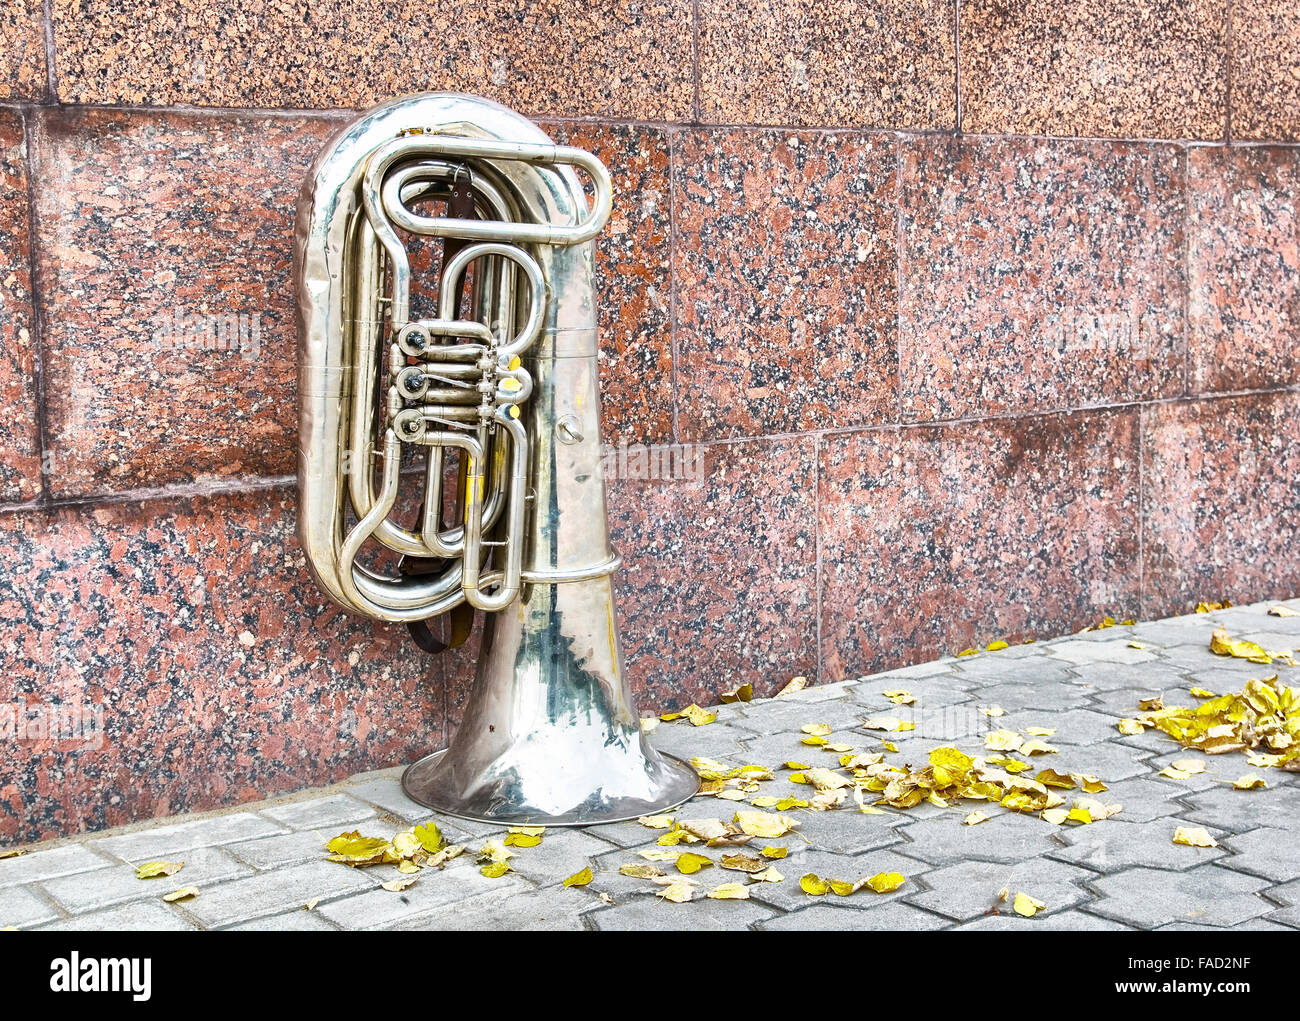 Wind musical instrument - Stock Image